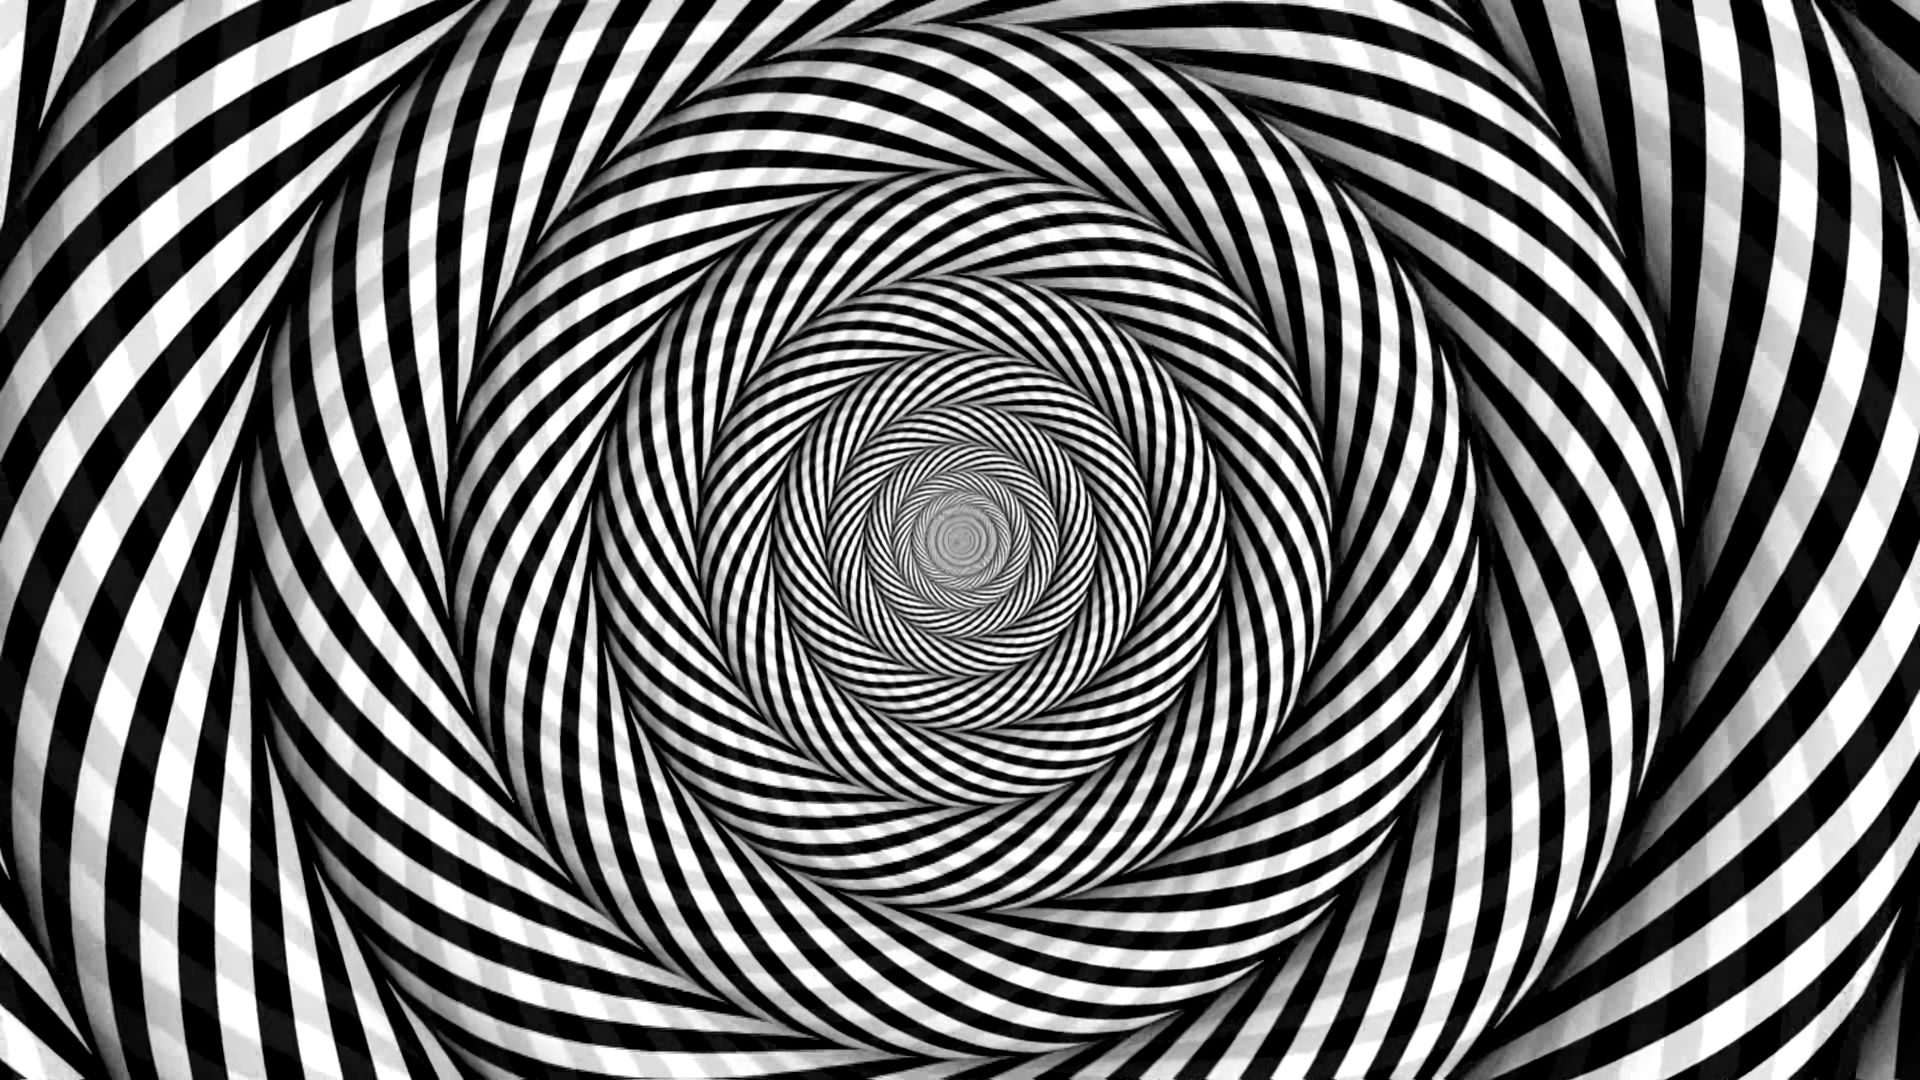 Black And White Optical Illusion Fondo De Pantalla Hd